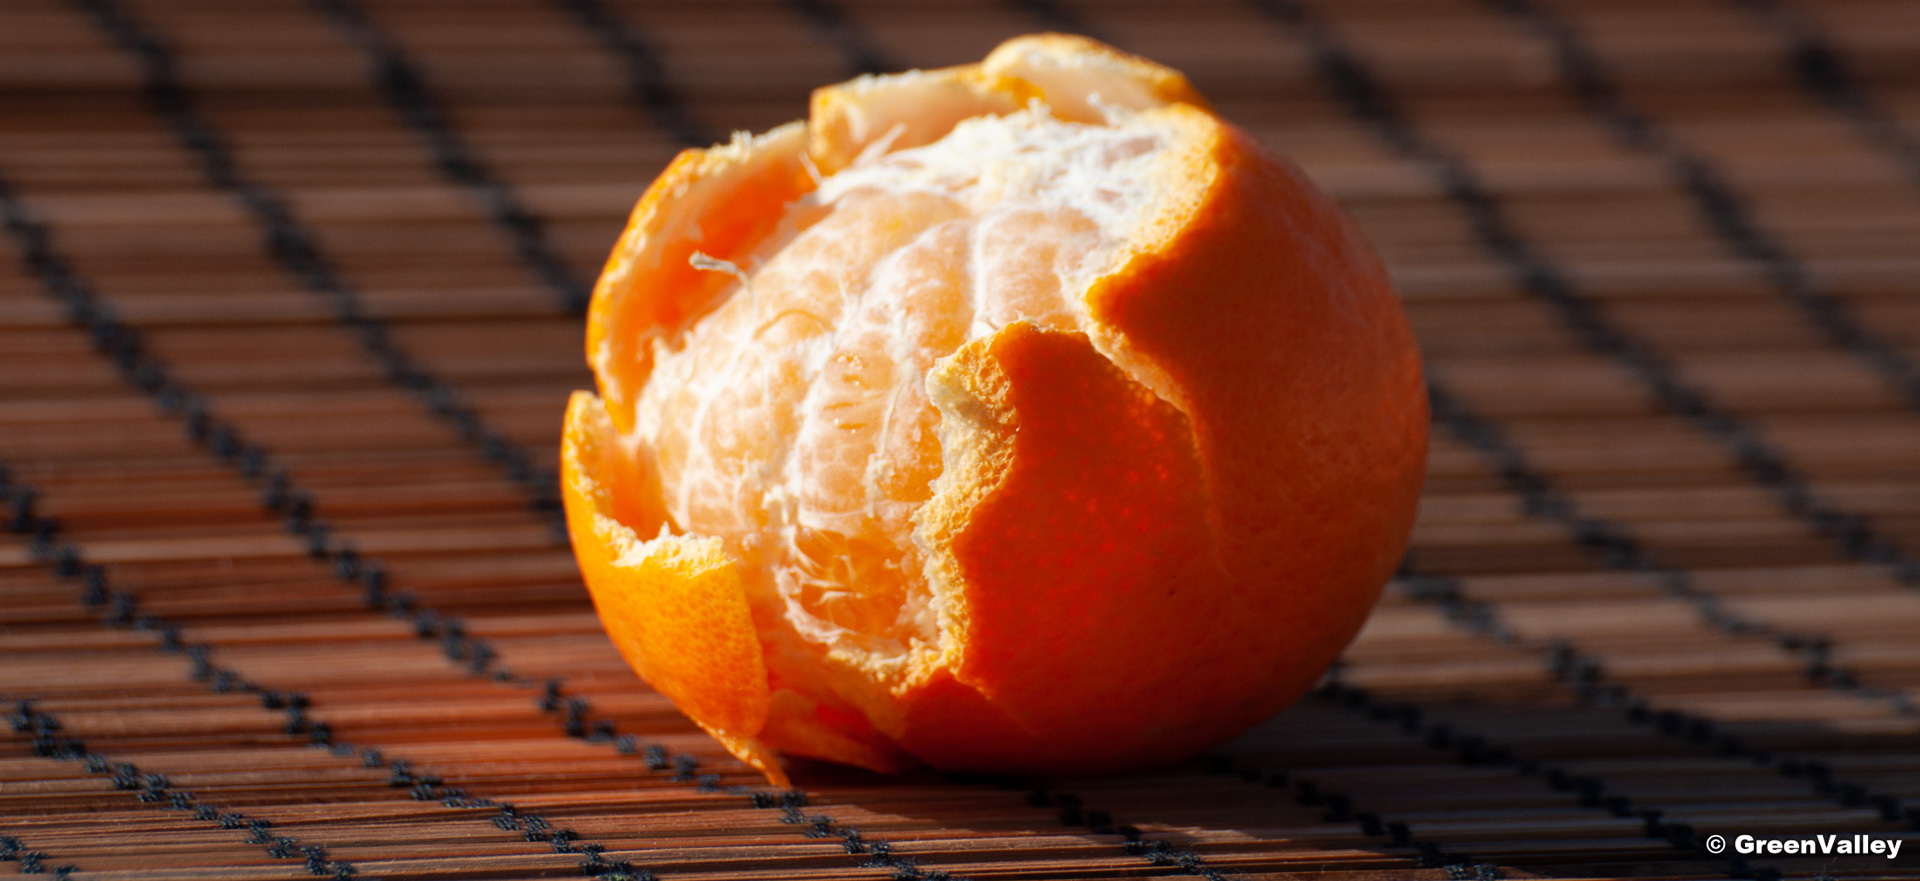 Clementines are a Sicilian excellence cultivated according to a biological process from the producer to the consumer